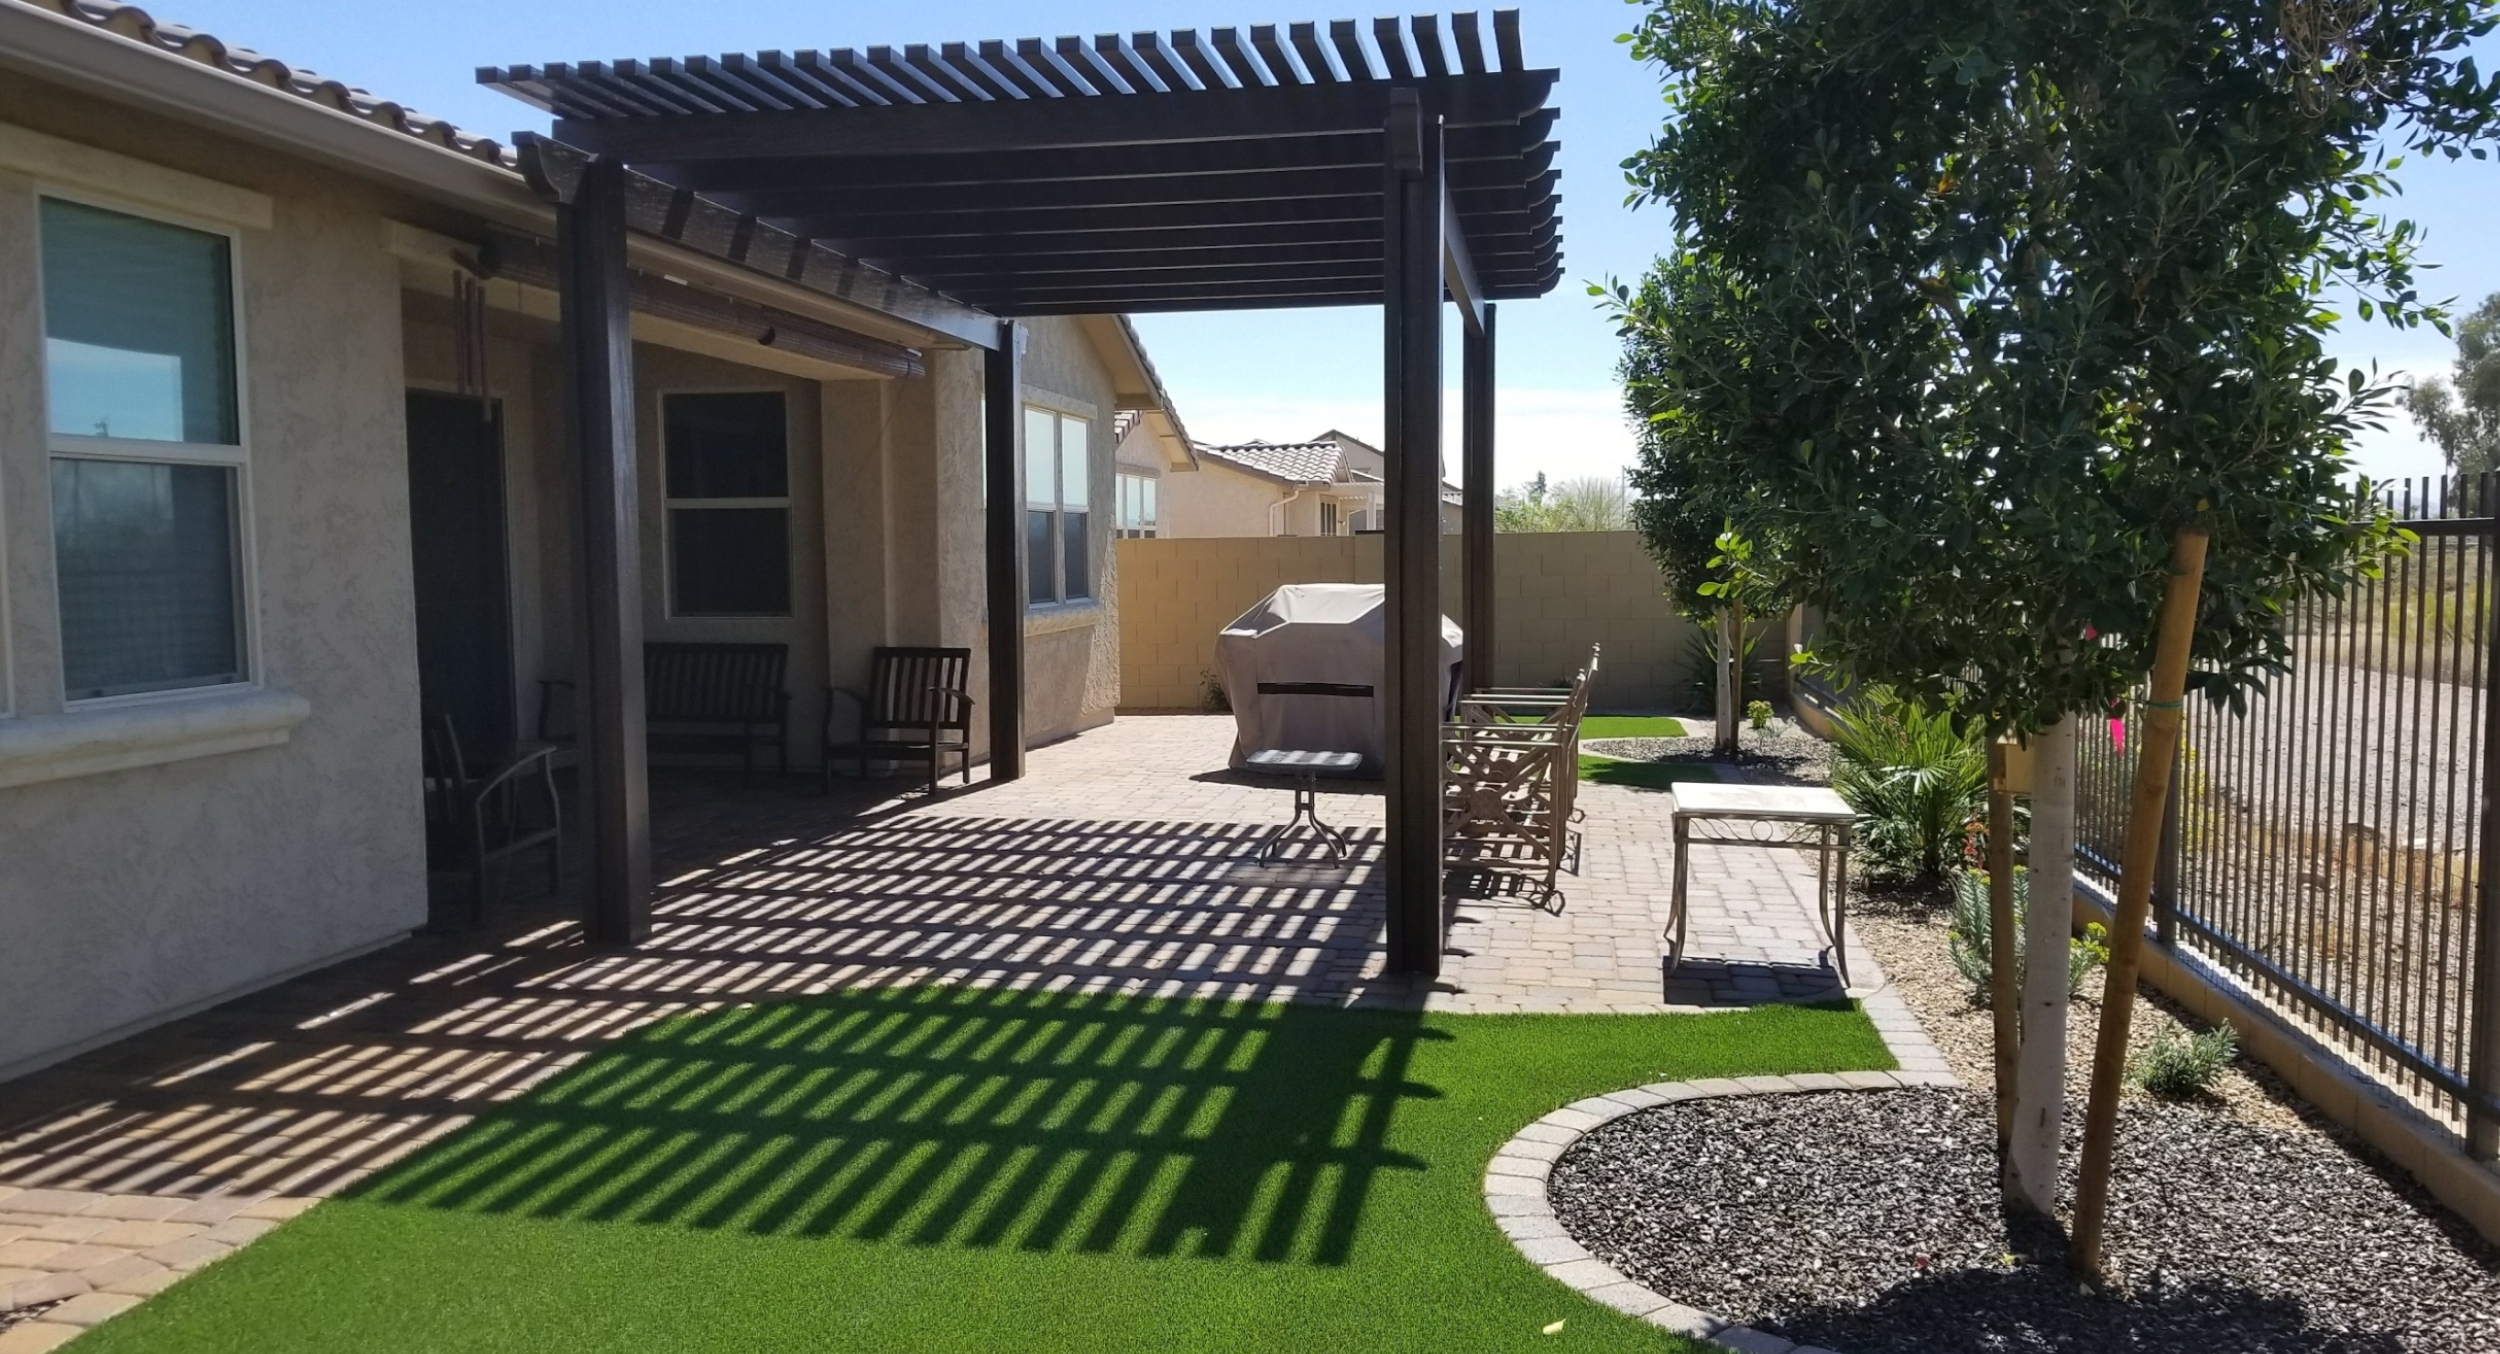 This slice of a backyard turned into a lovely space with landscape design. Glendale, AZ clients now have a lush look with synthetic lawn, shade ramada over a new travertine patio, and new shade trees and flowering desert plants.